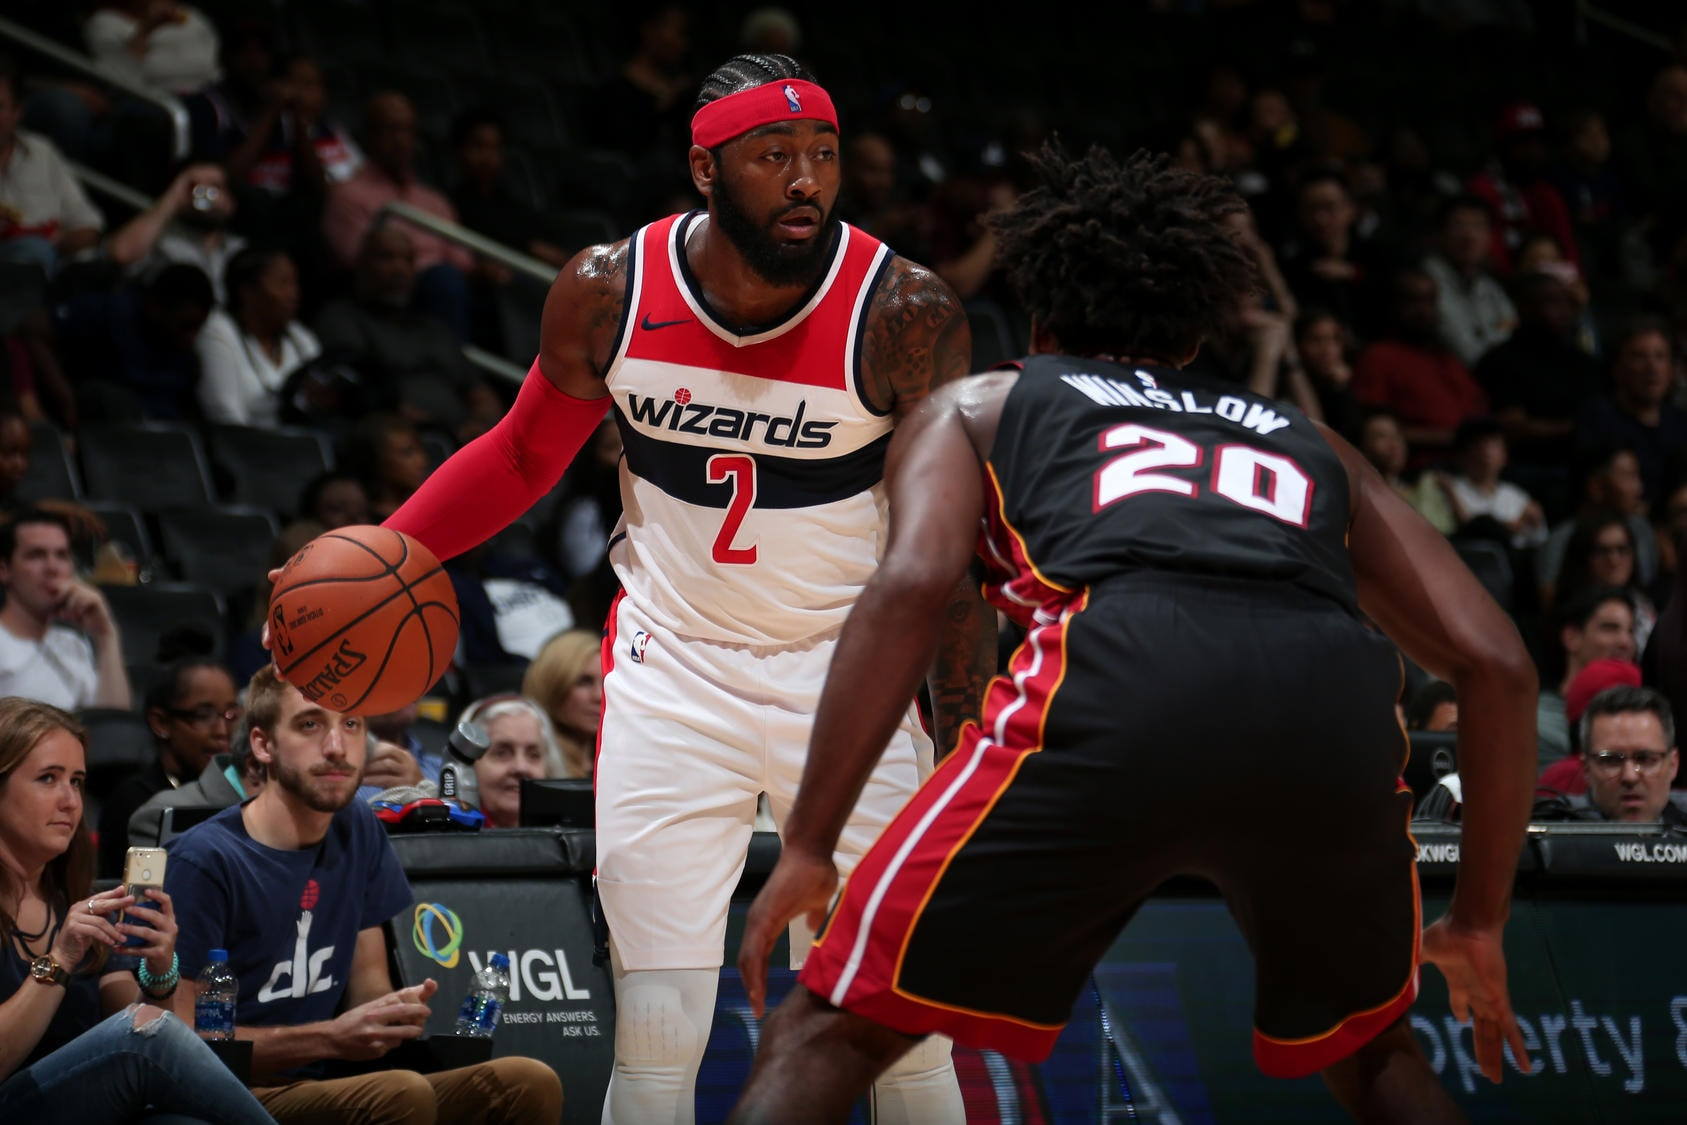 Wizards take on Heat at home opener on Oct. 18